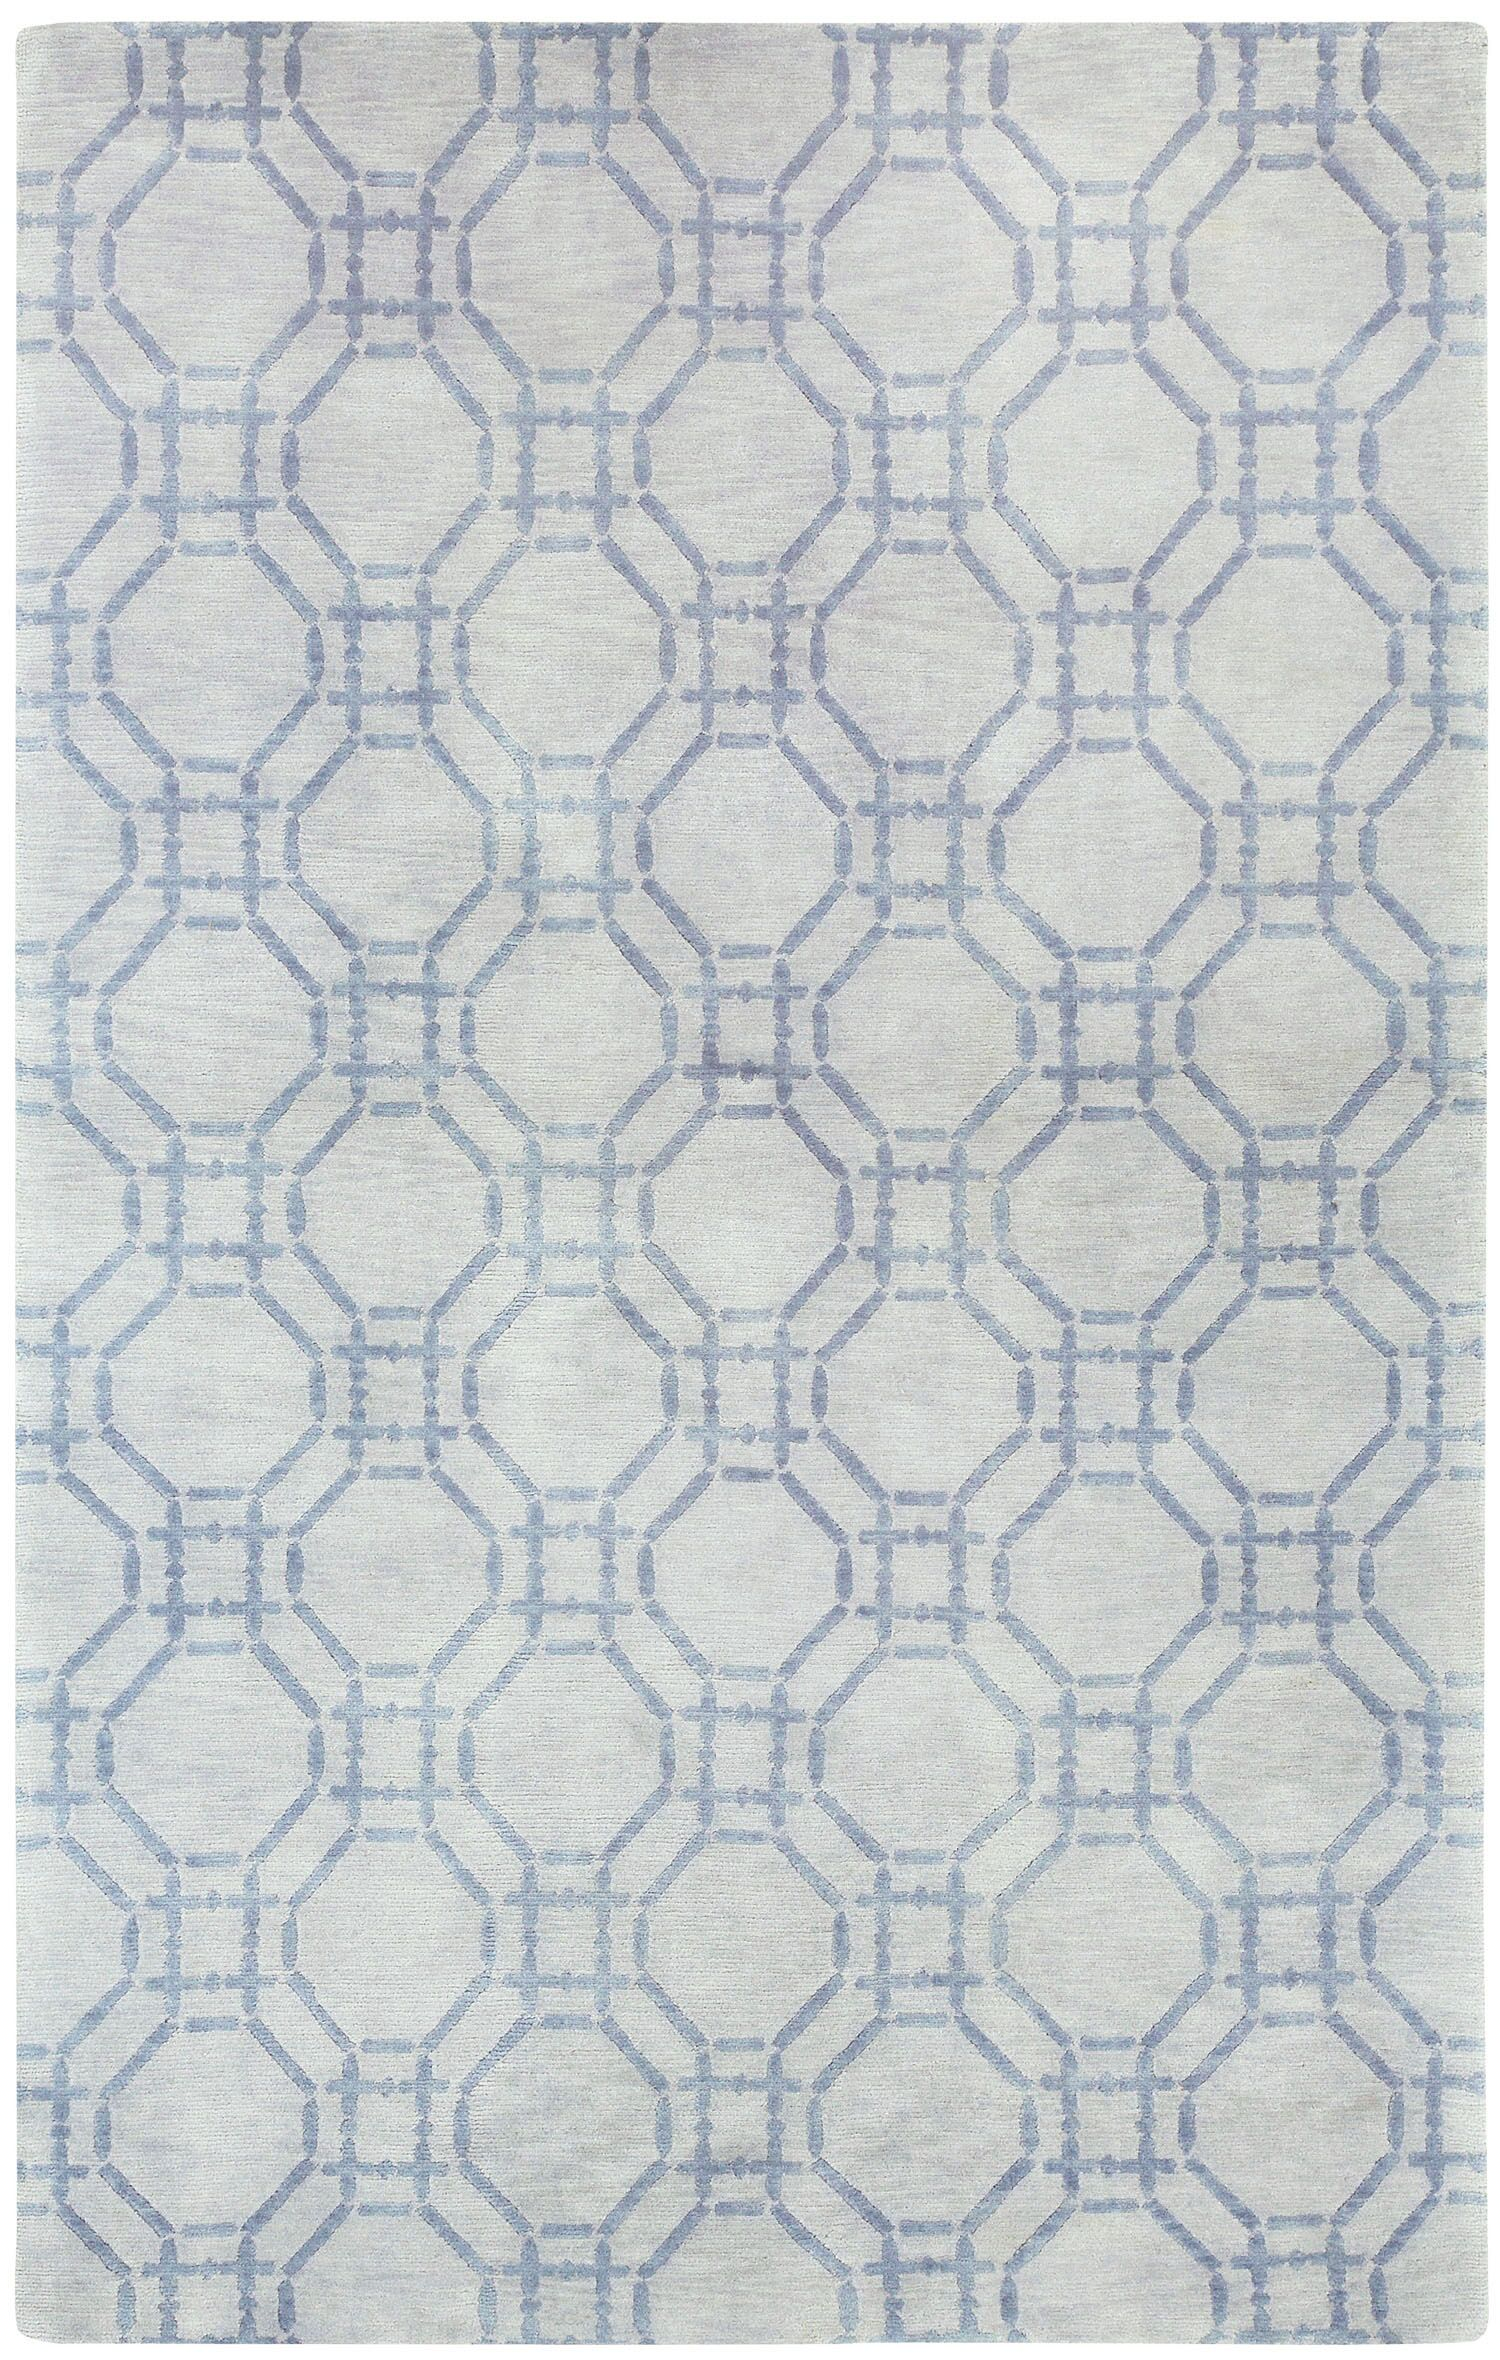 Cococozy Hoop Hand Knotted Area Rug Rug Size: 5' x 8'